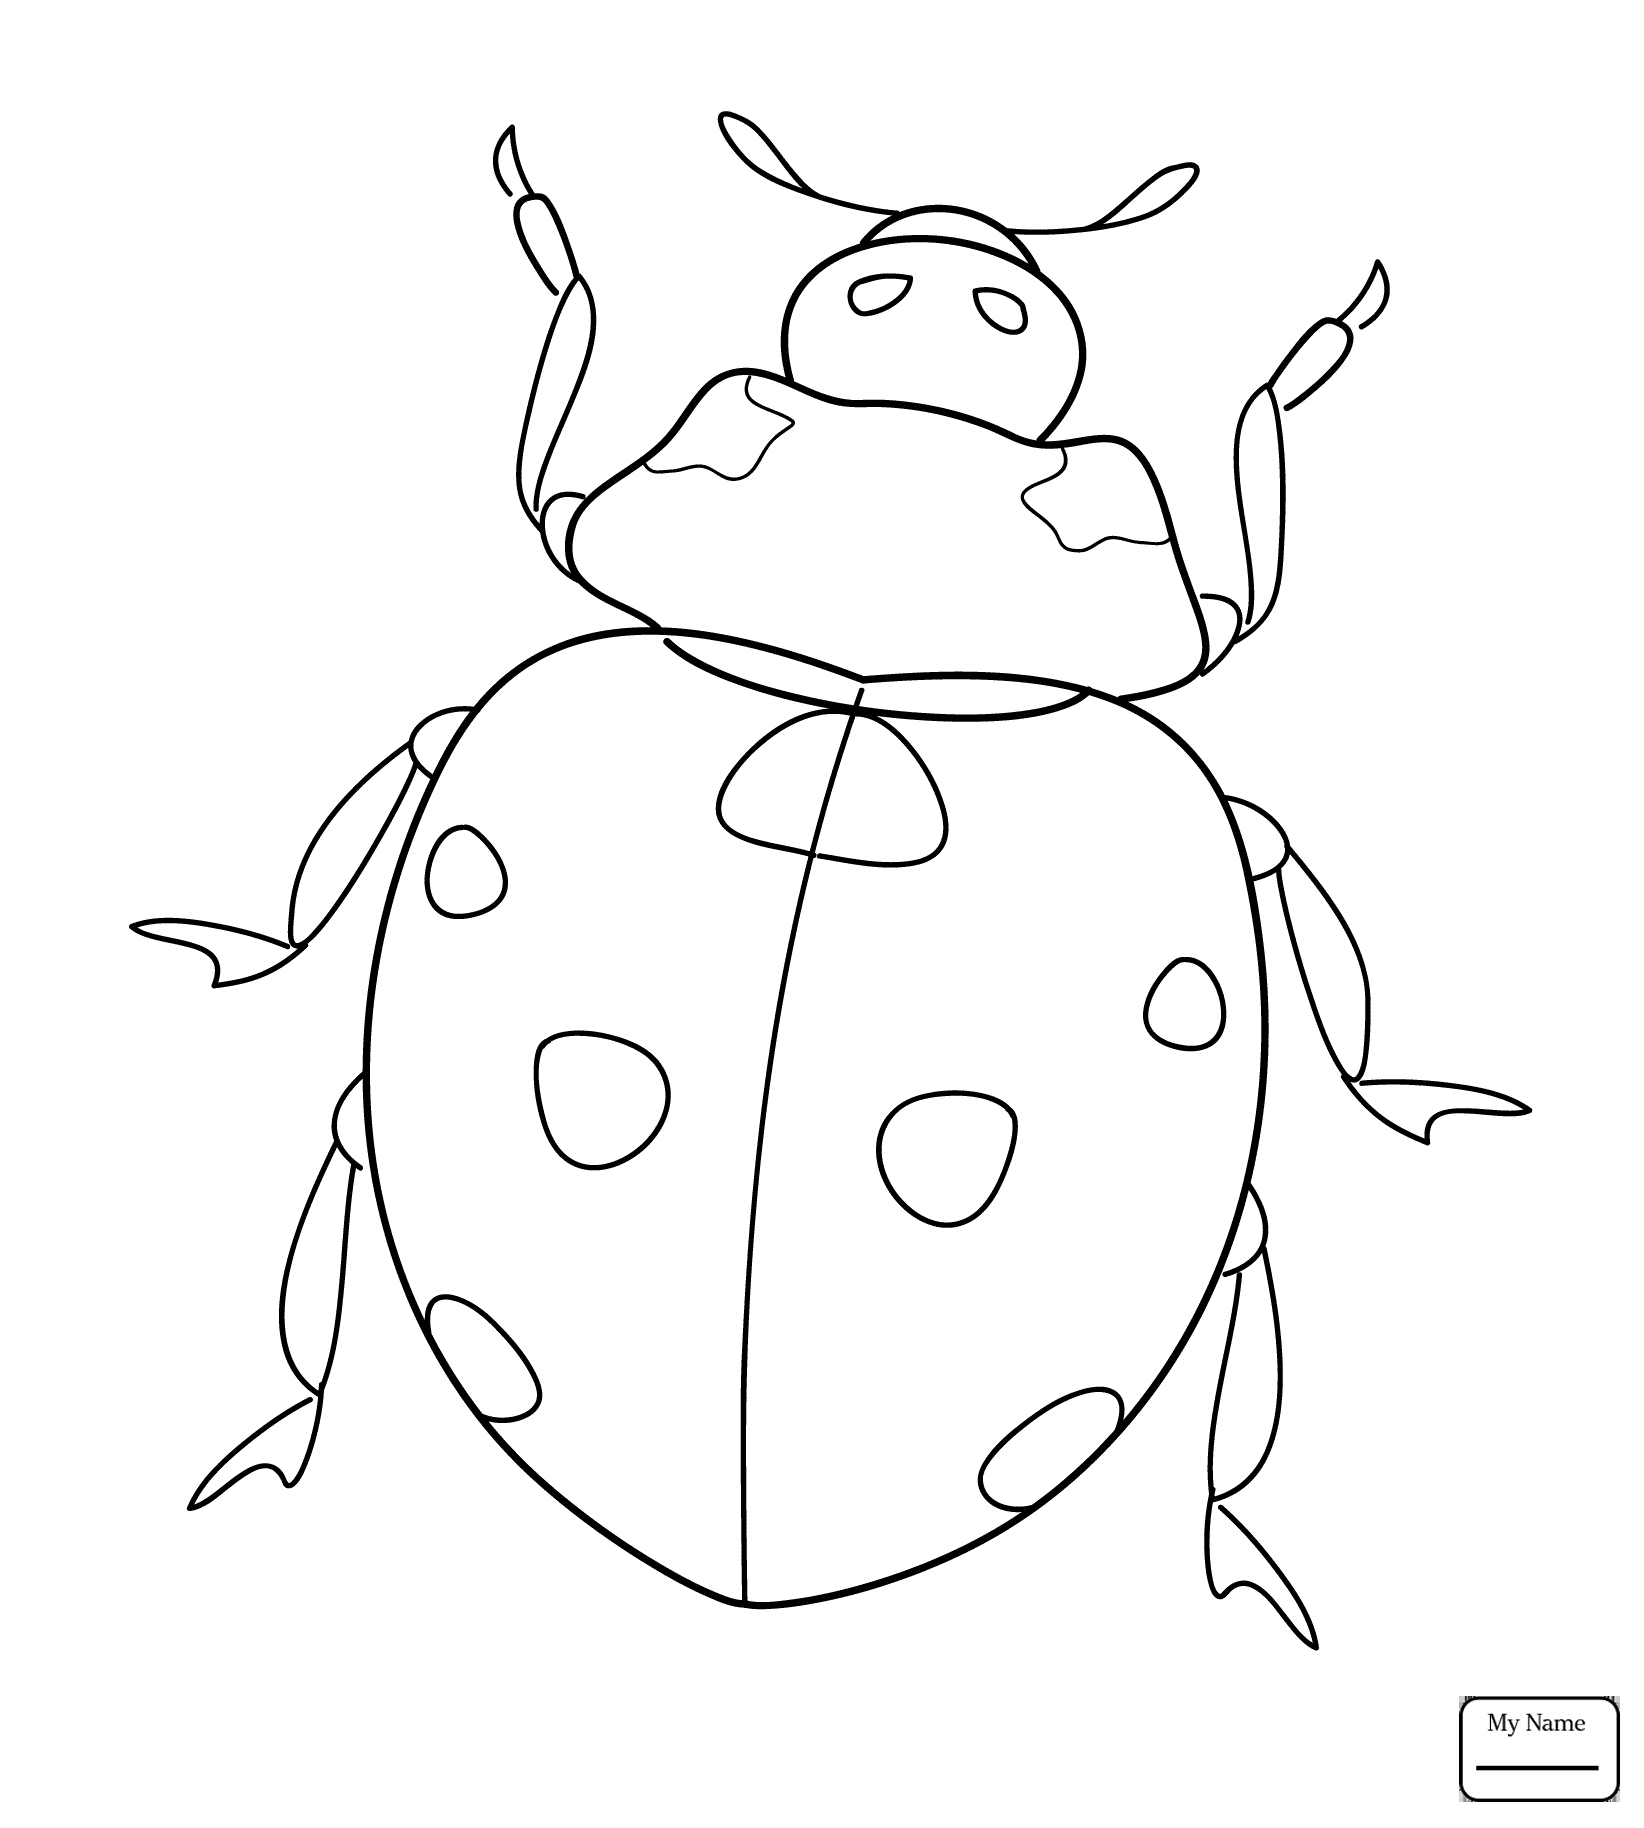 1644x1828 Coloring Pages Cute Ladybug Insects Ladybug